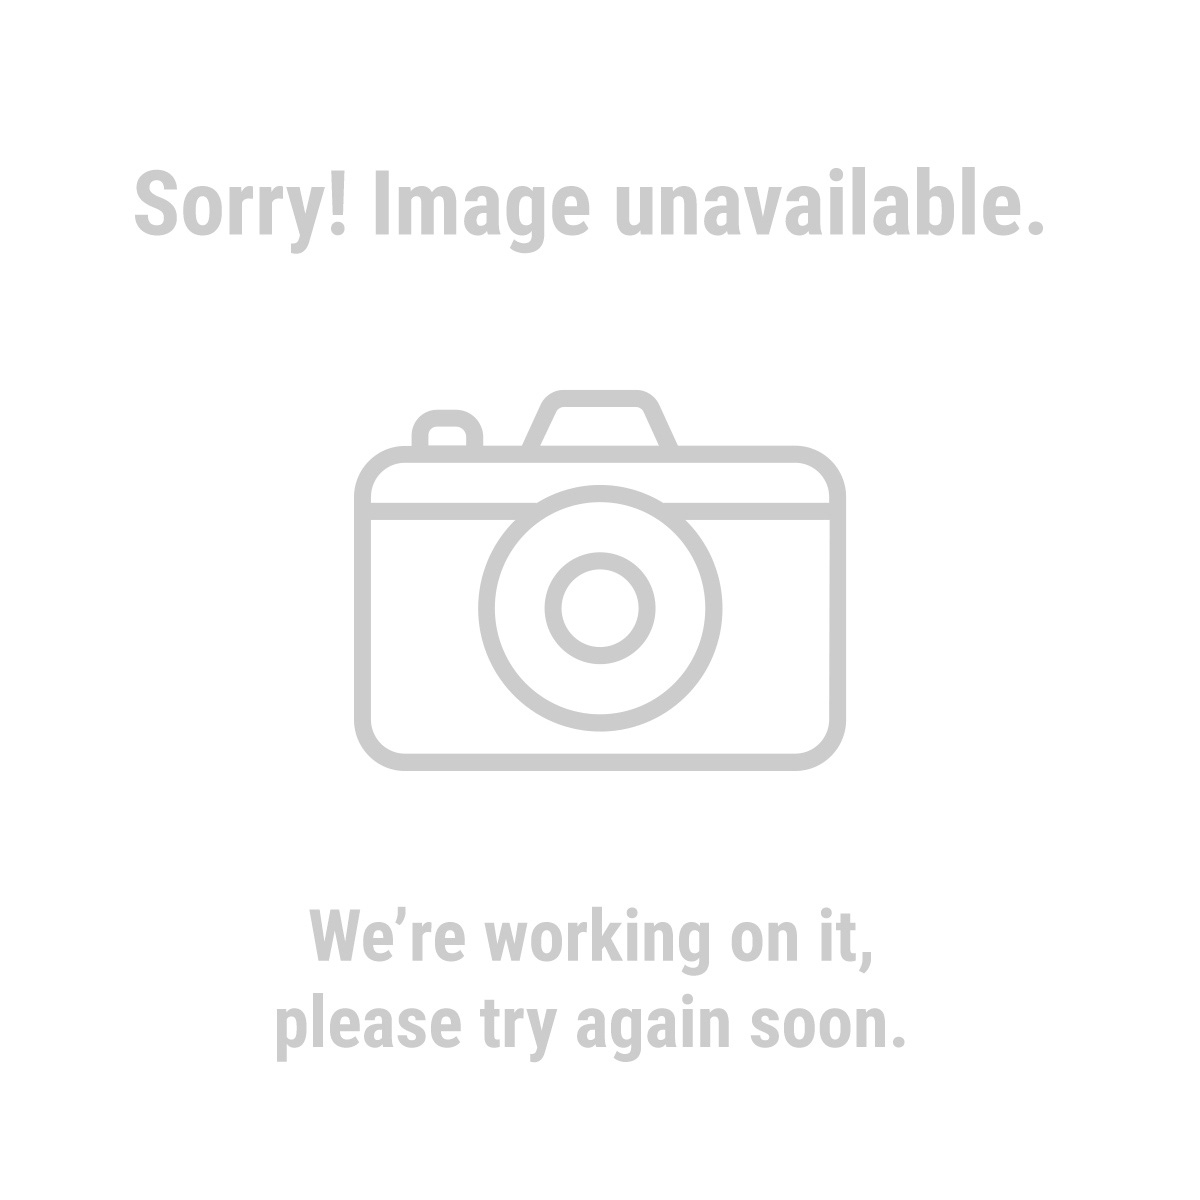 Vanguard 62934 50 ft. x 14 Gauge Green Outdoor Extension Cord